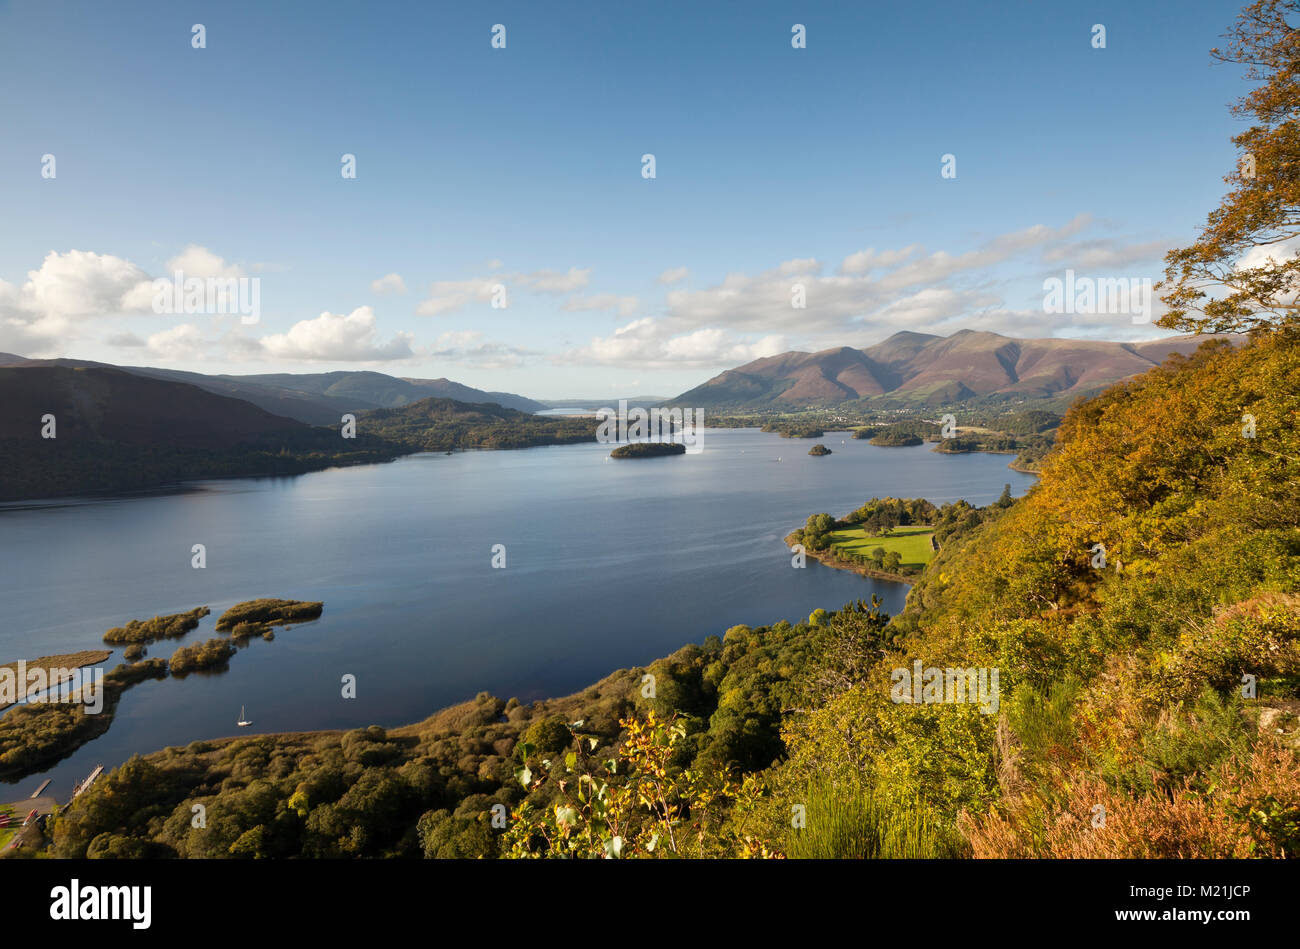 Surprise View, Lake District UK - Stock Image